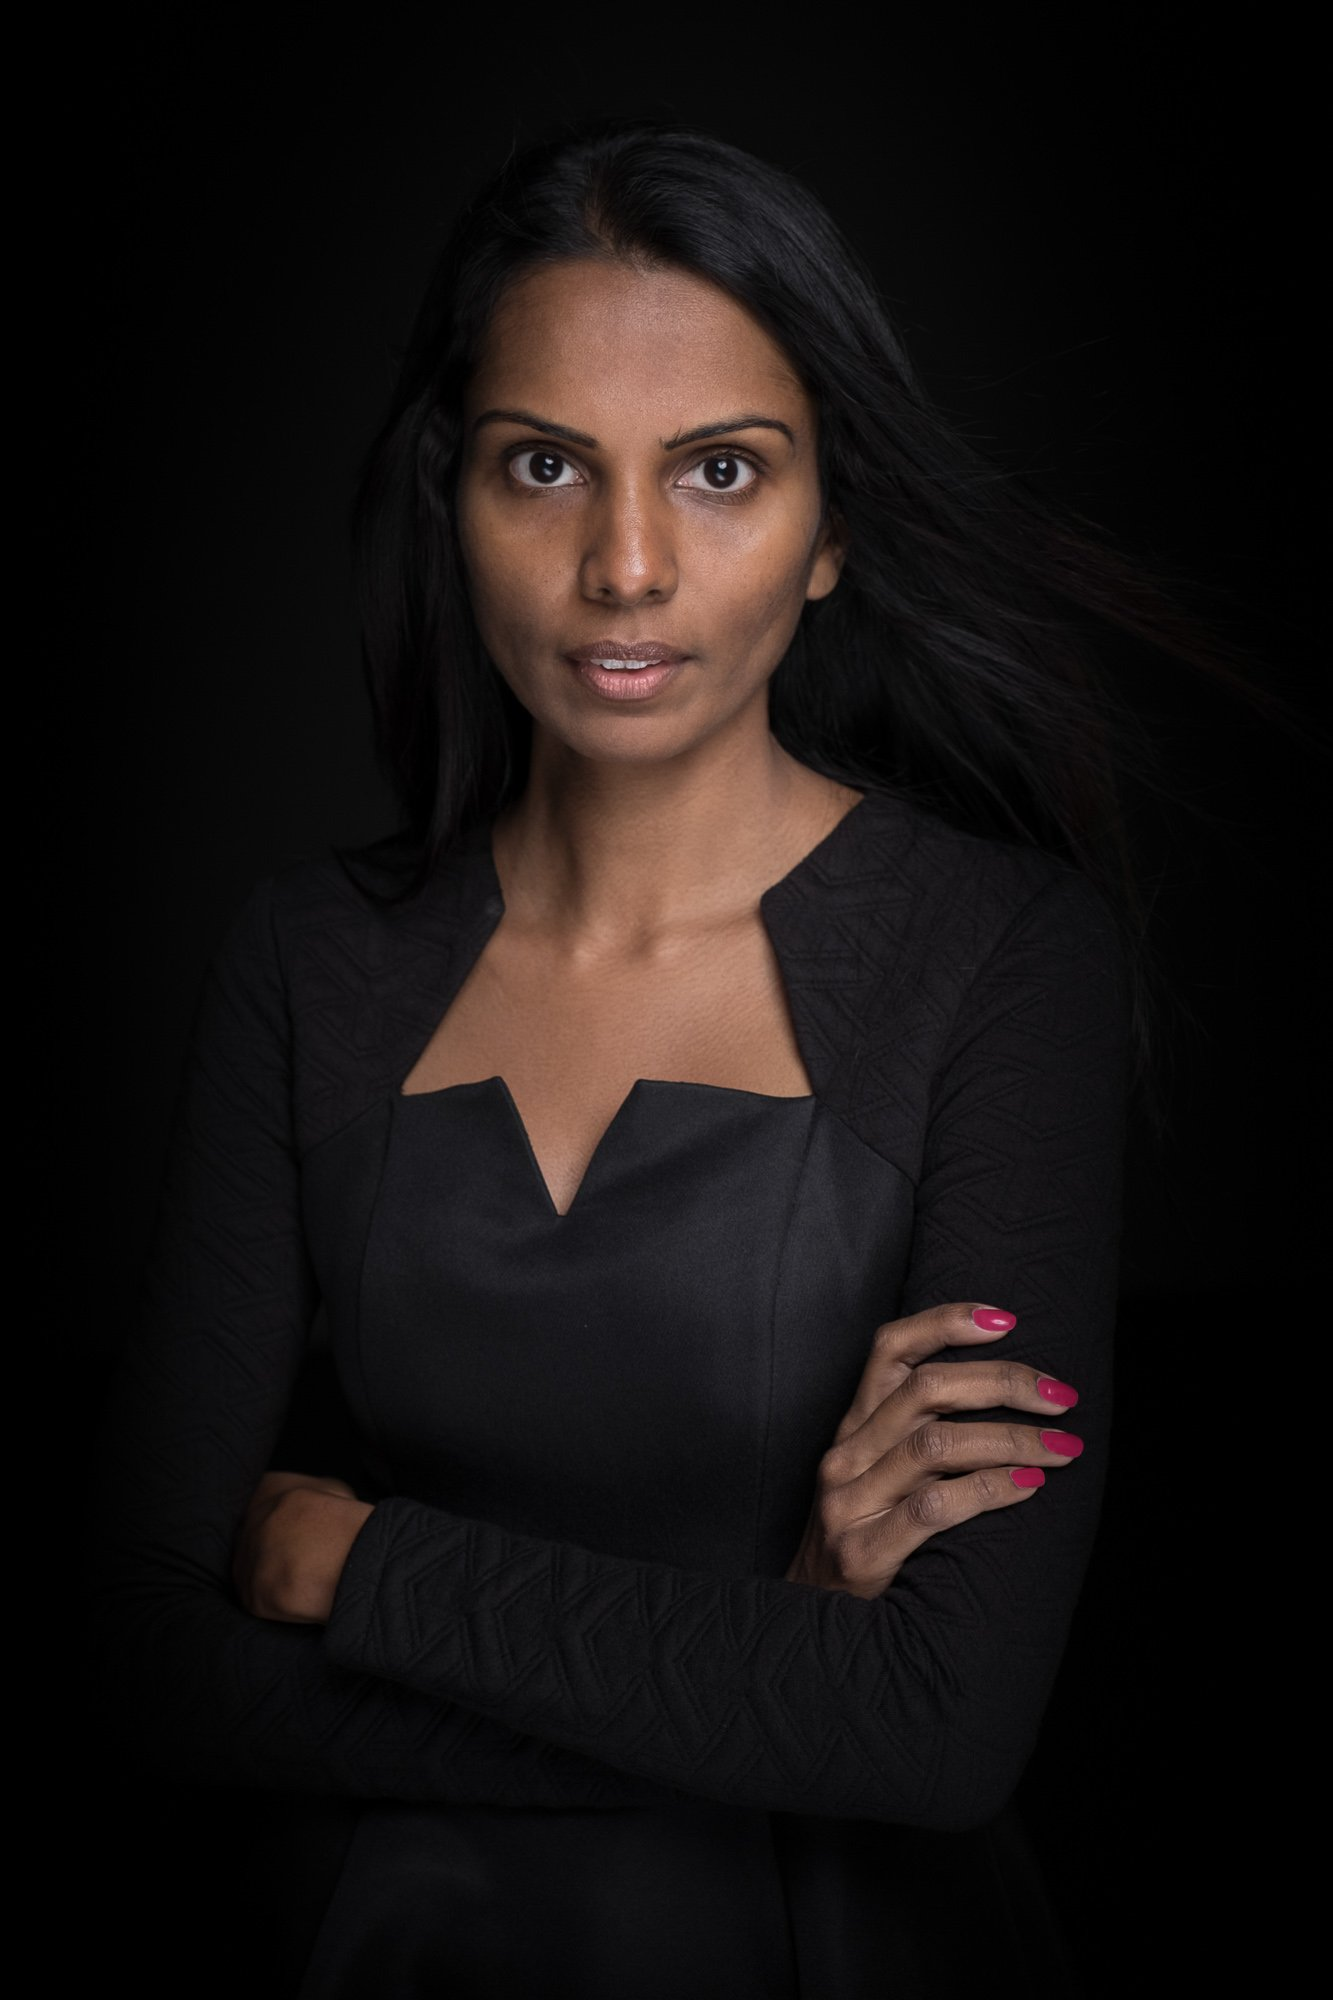 Headshot Corporate Photographer Singapore Jose Jeuland Portrait Photography studio Asia ceo founder shanthi jeuland